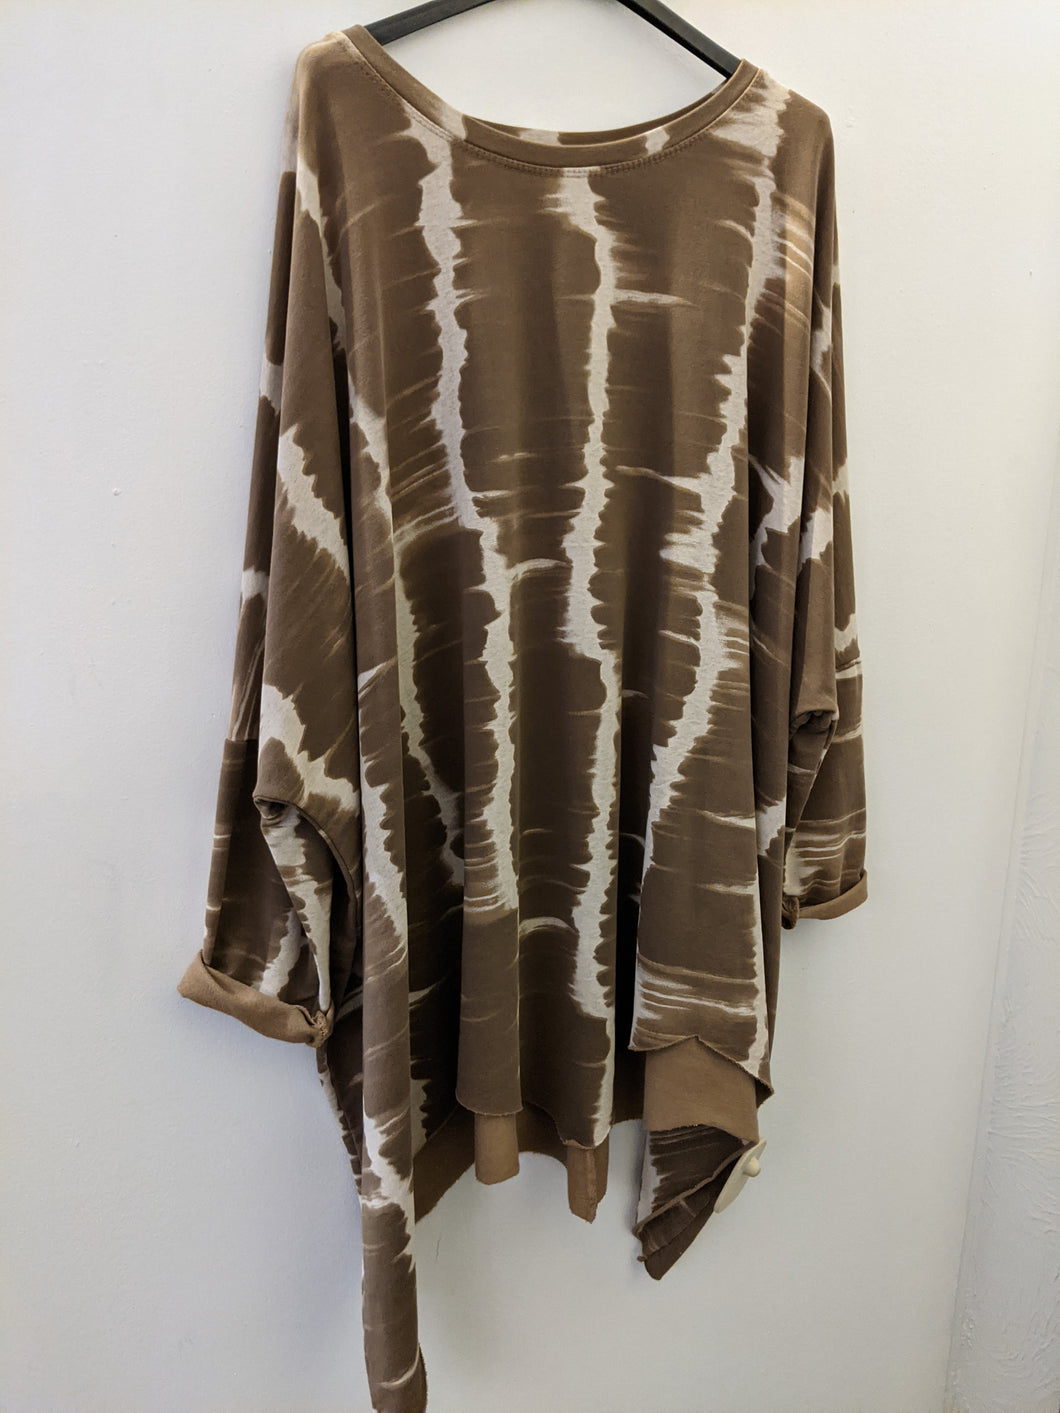 Oversize Loungewear Sweatshirt/Tunic with Tie Dye Stripes and Zig Zag Hem